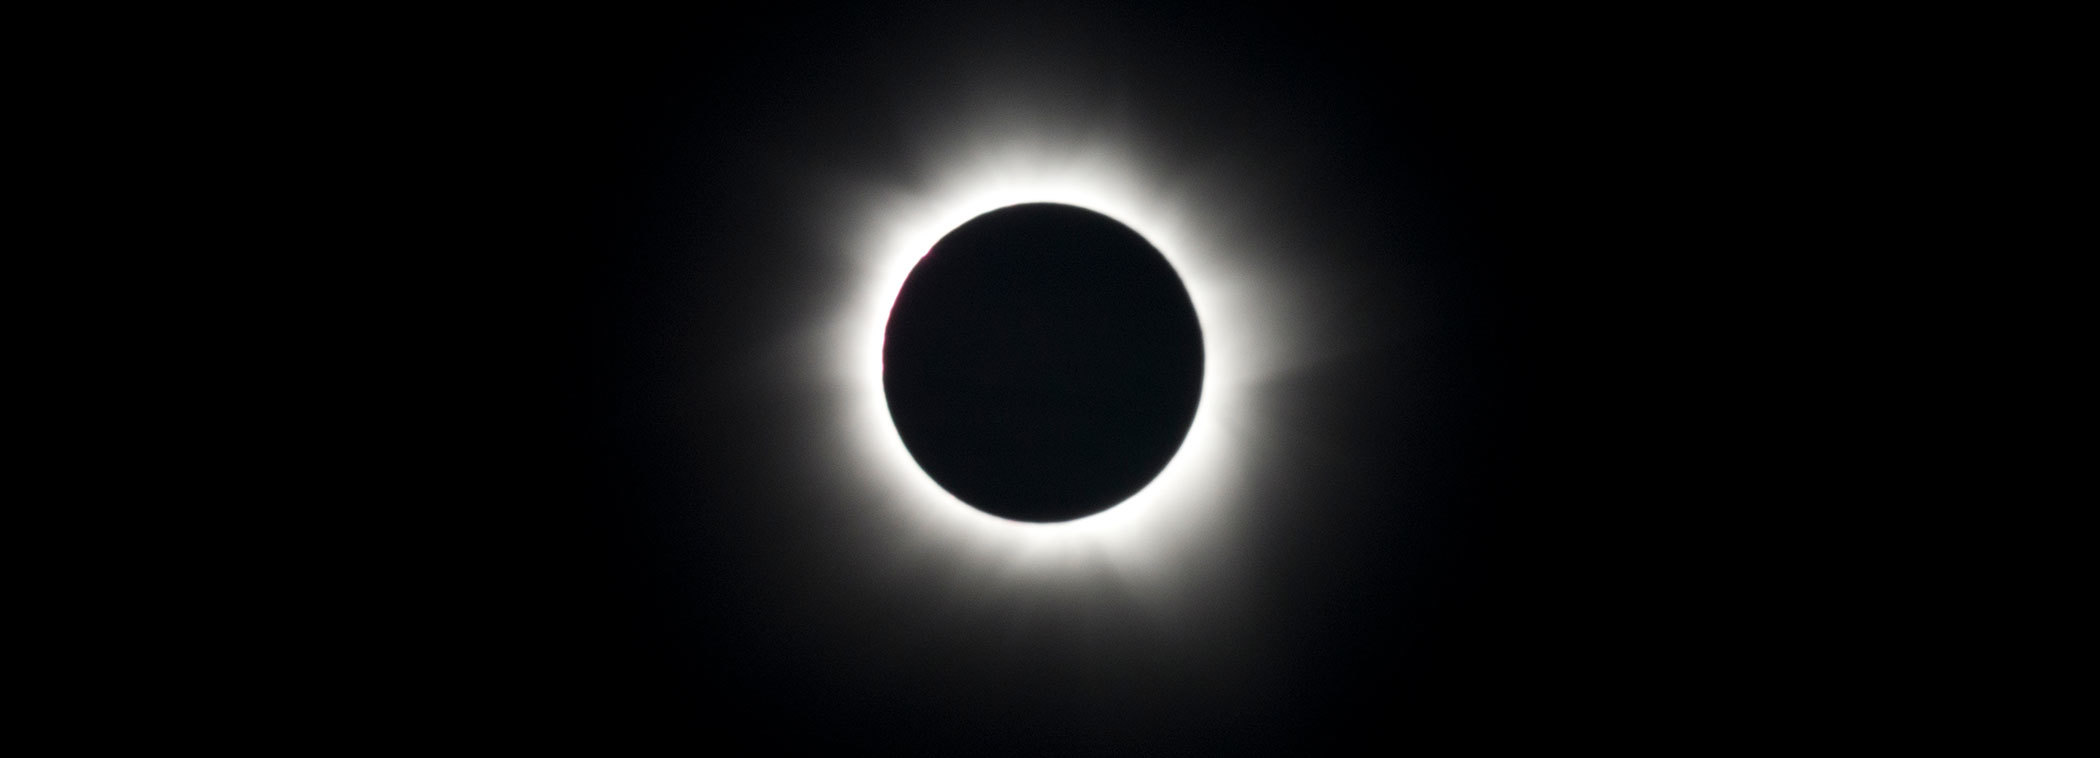 Eclipse slider